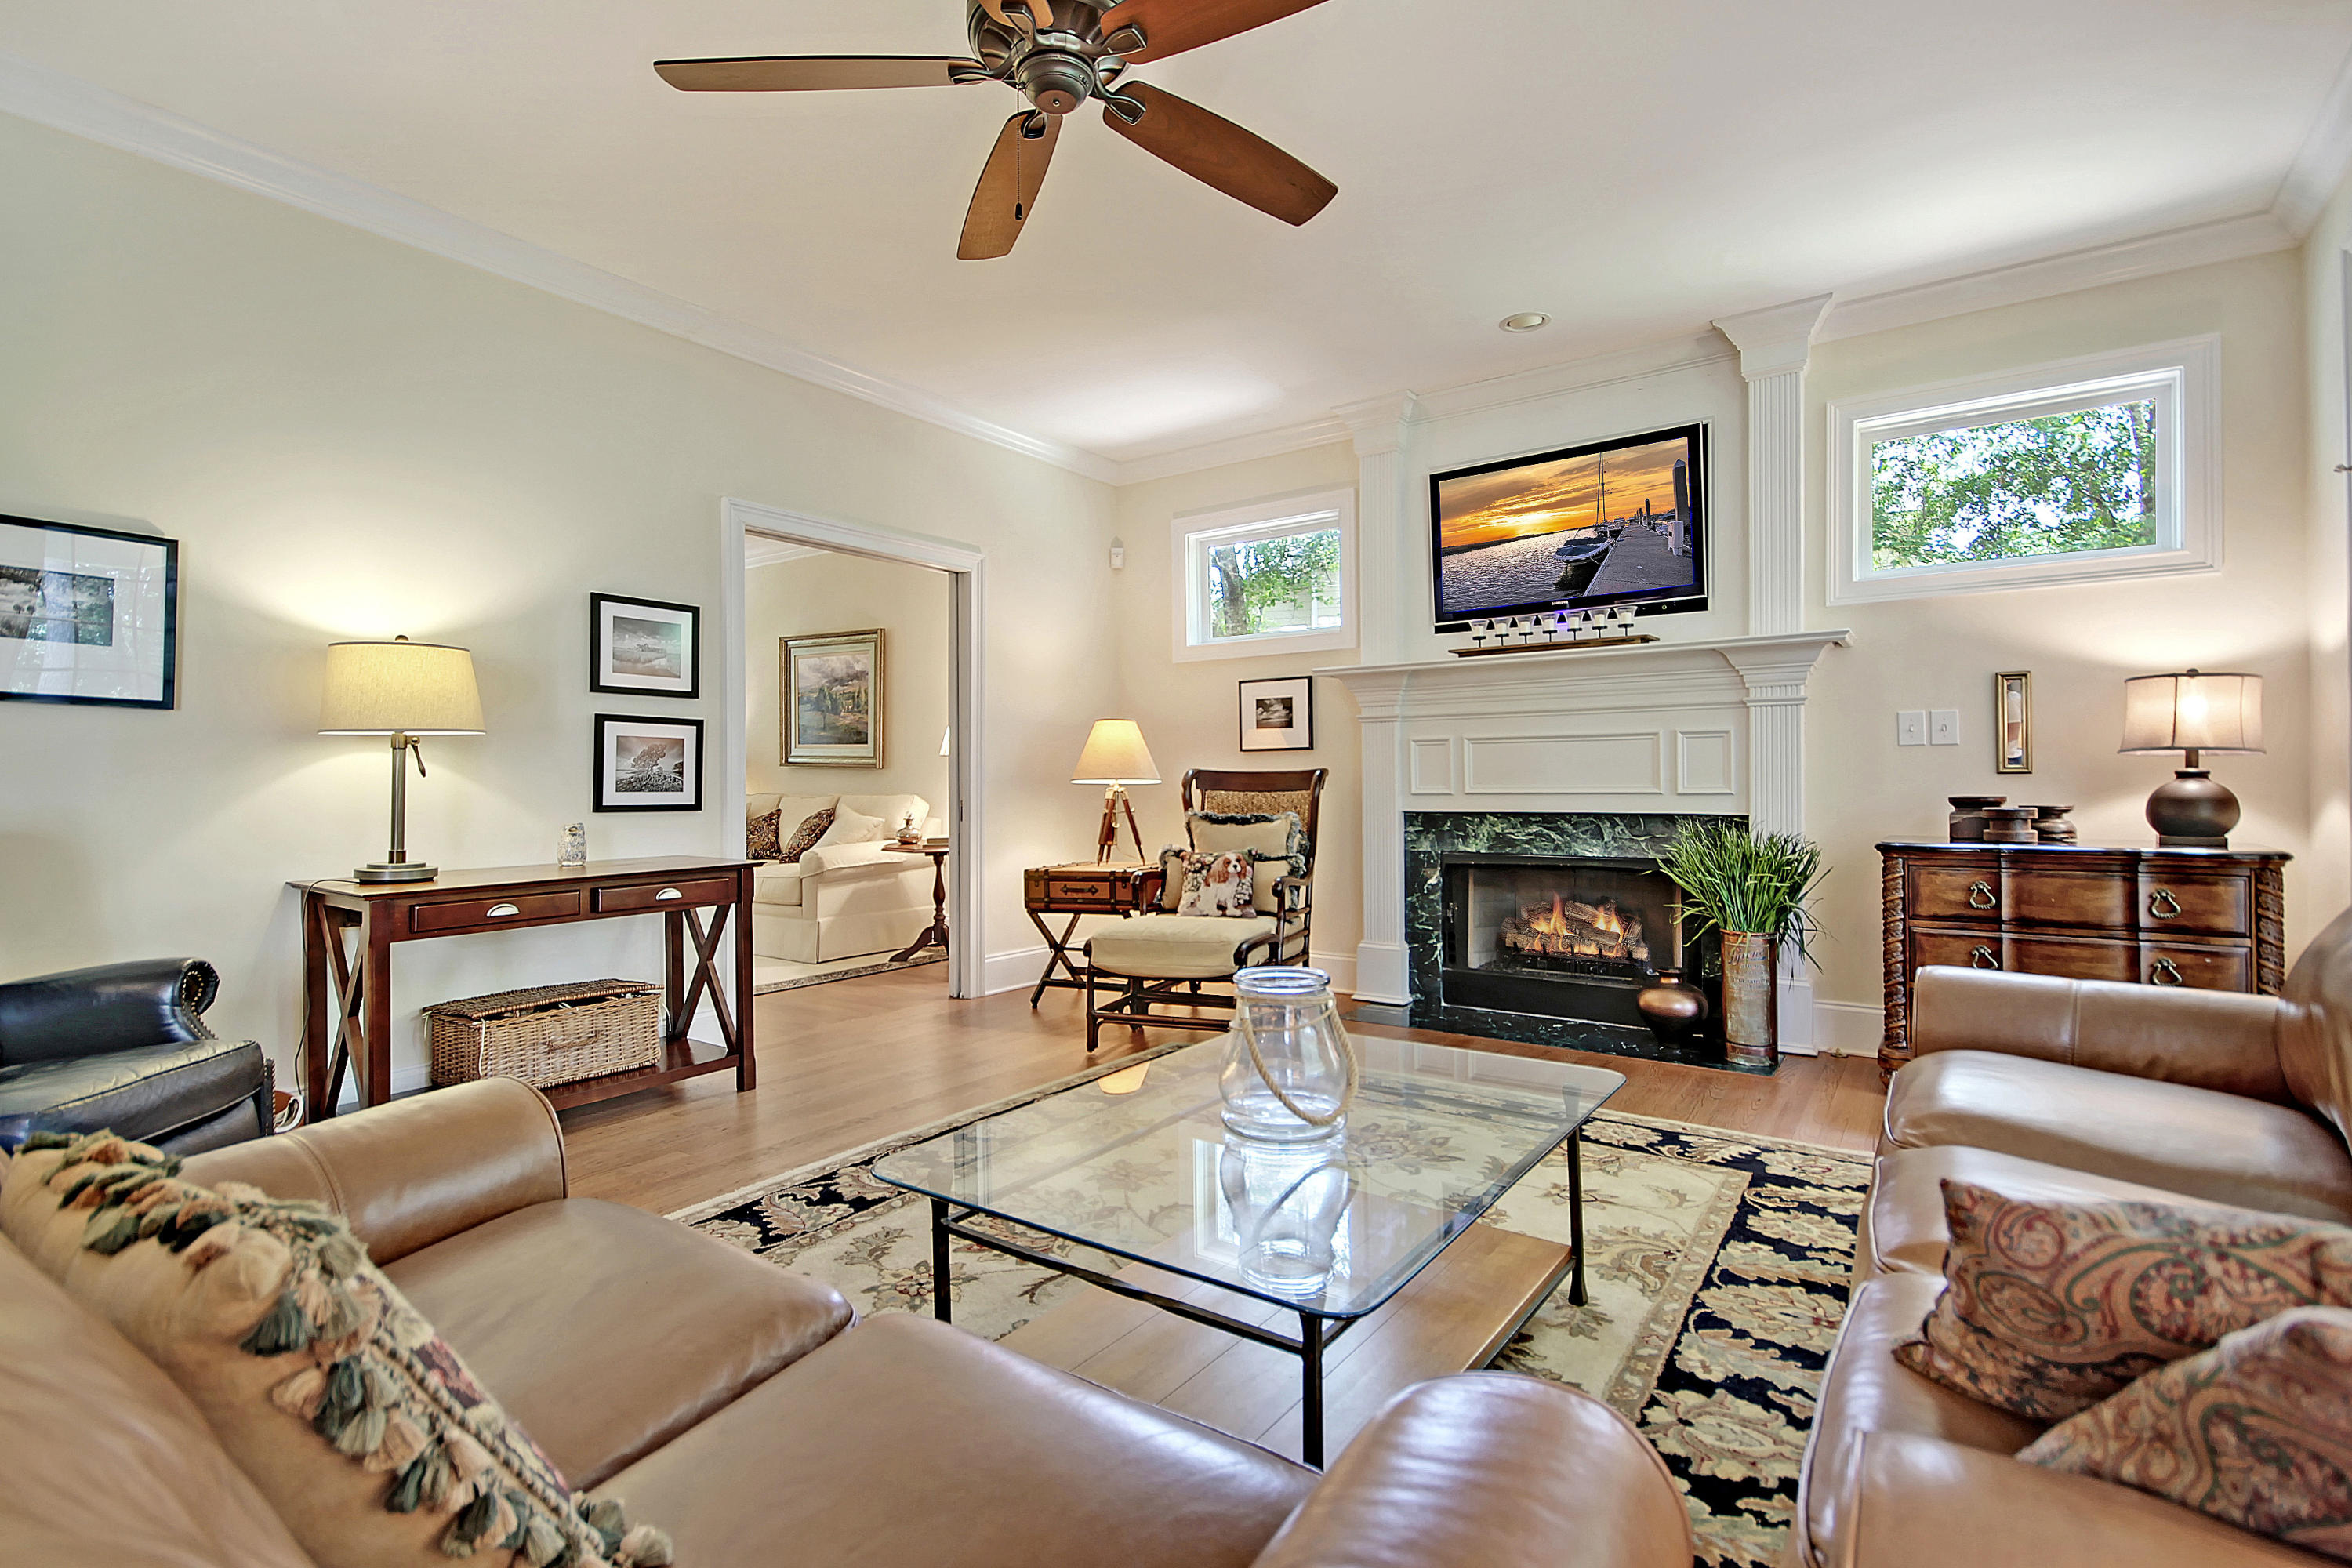 Dunes West Homes For Sale - 1829 Shell Ring, Mount Pleasant, SC - 2